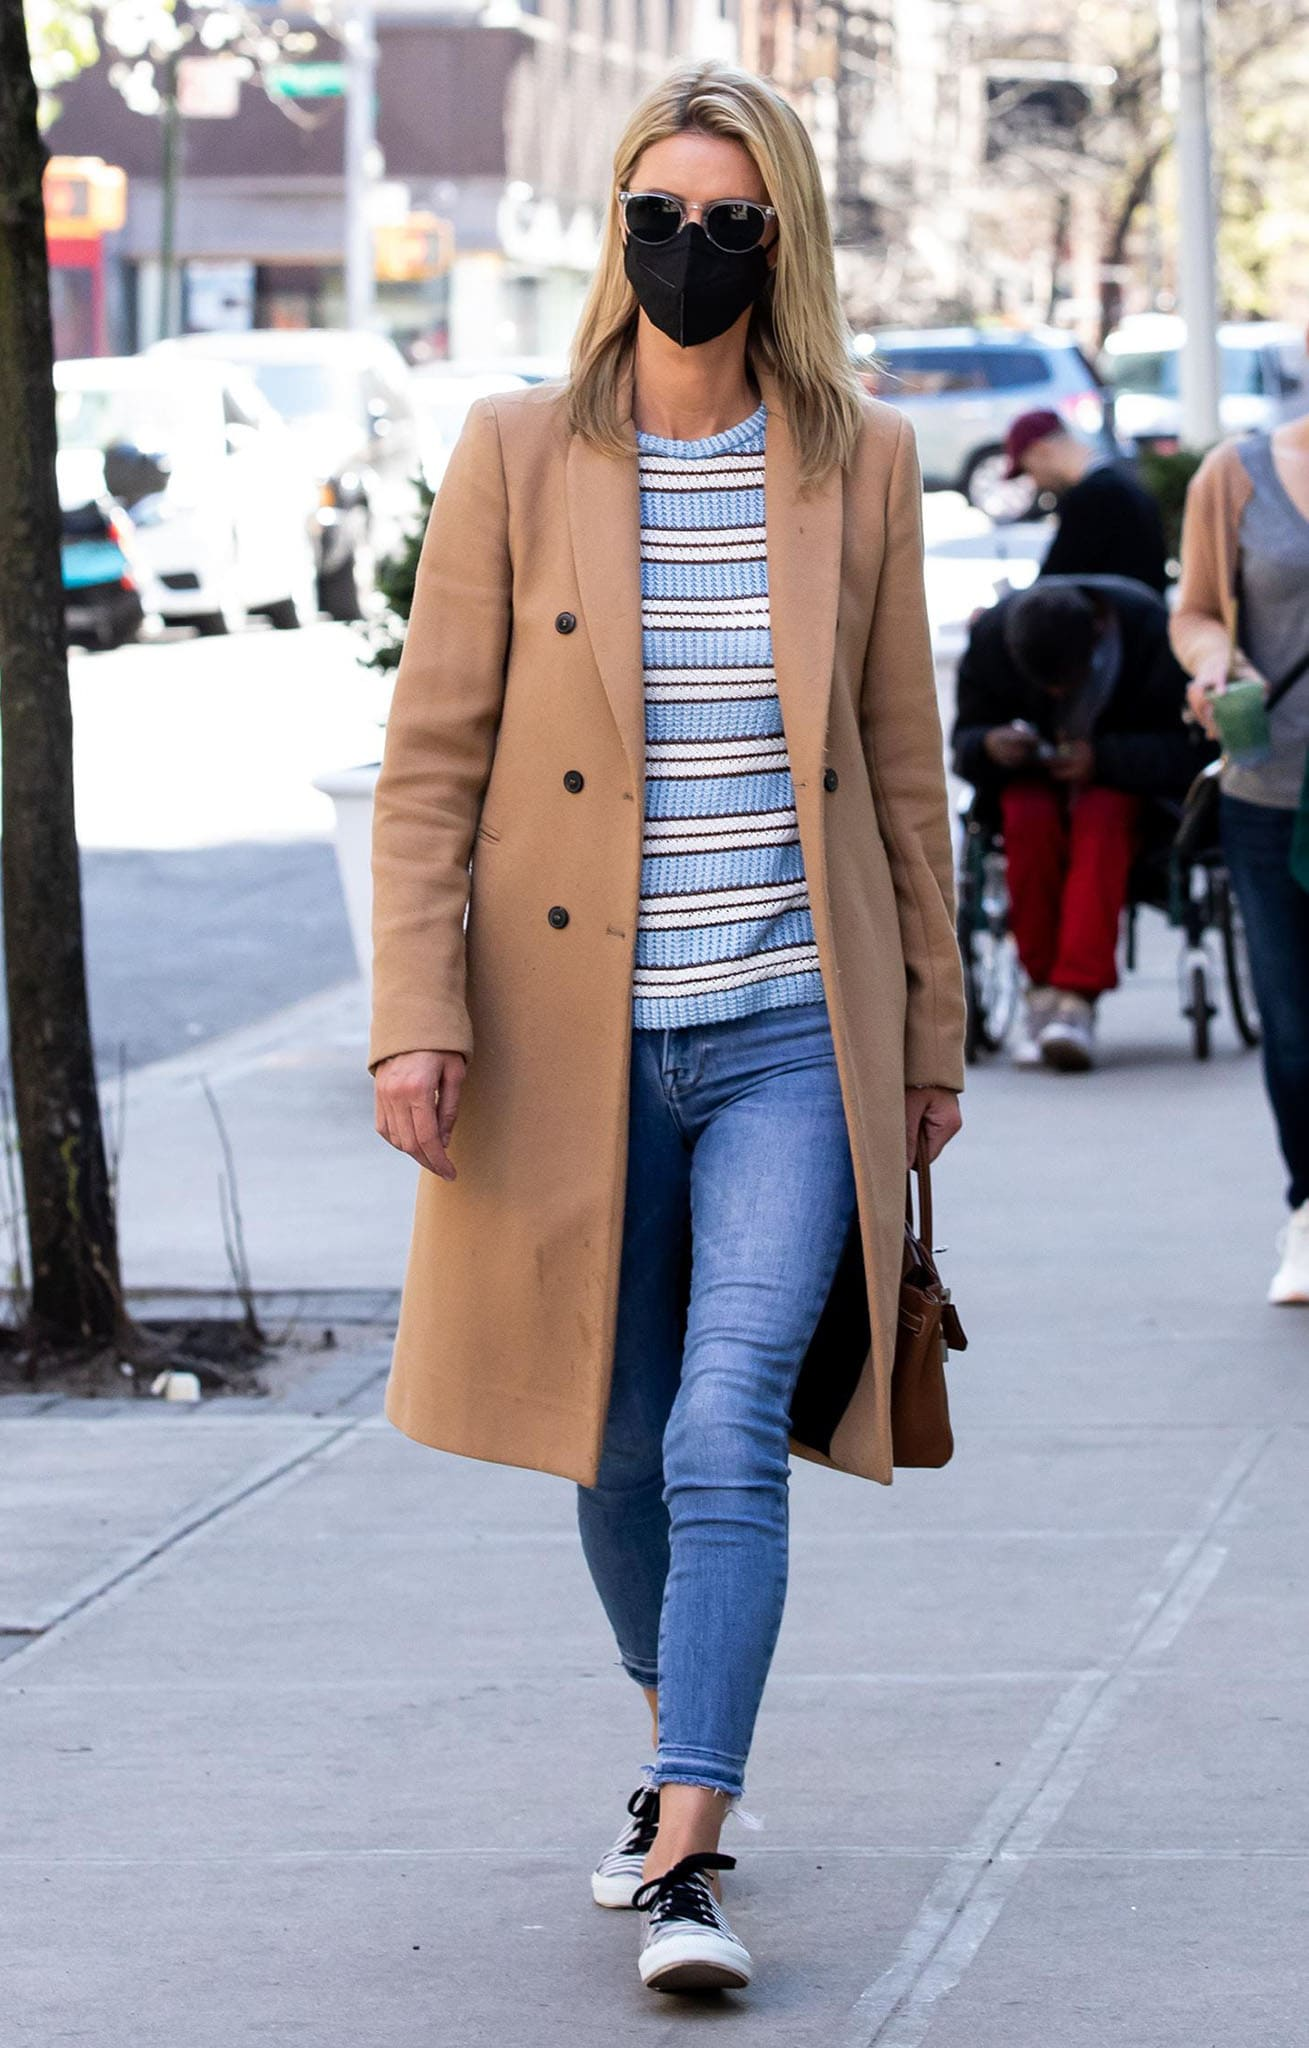 Nicky Hilton steps out in a striped sweater with jeans and a tan coat in SoHo on April 7, 2021